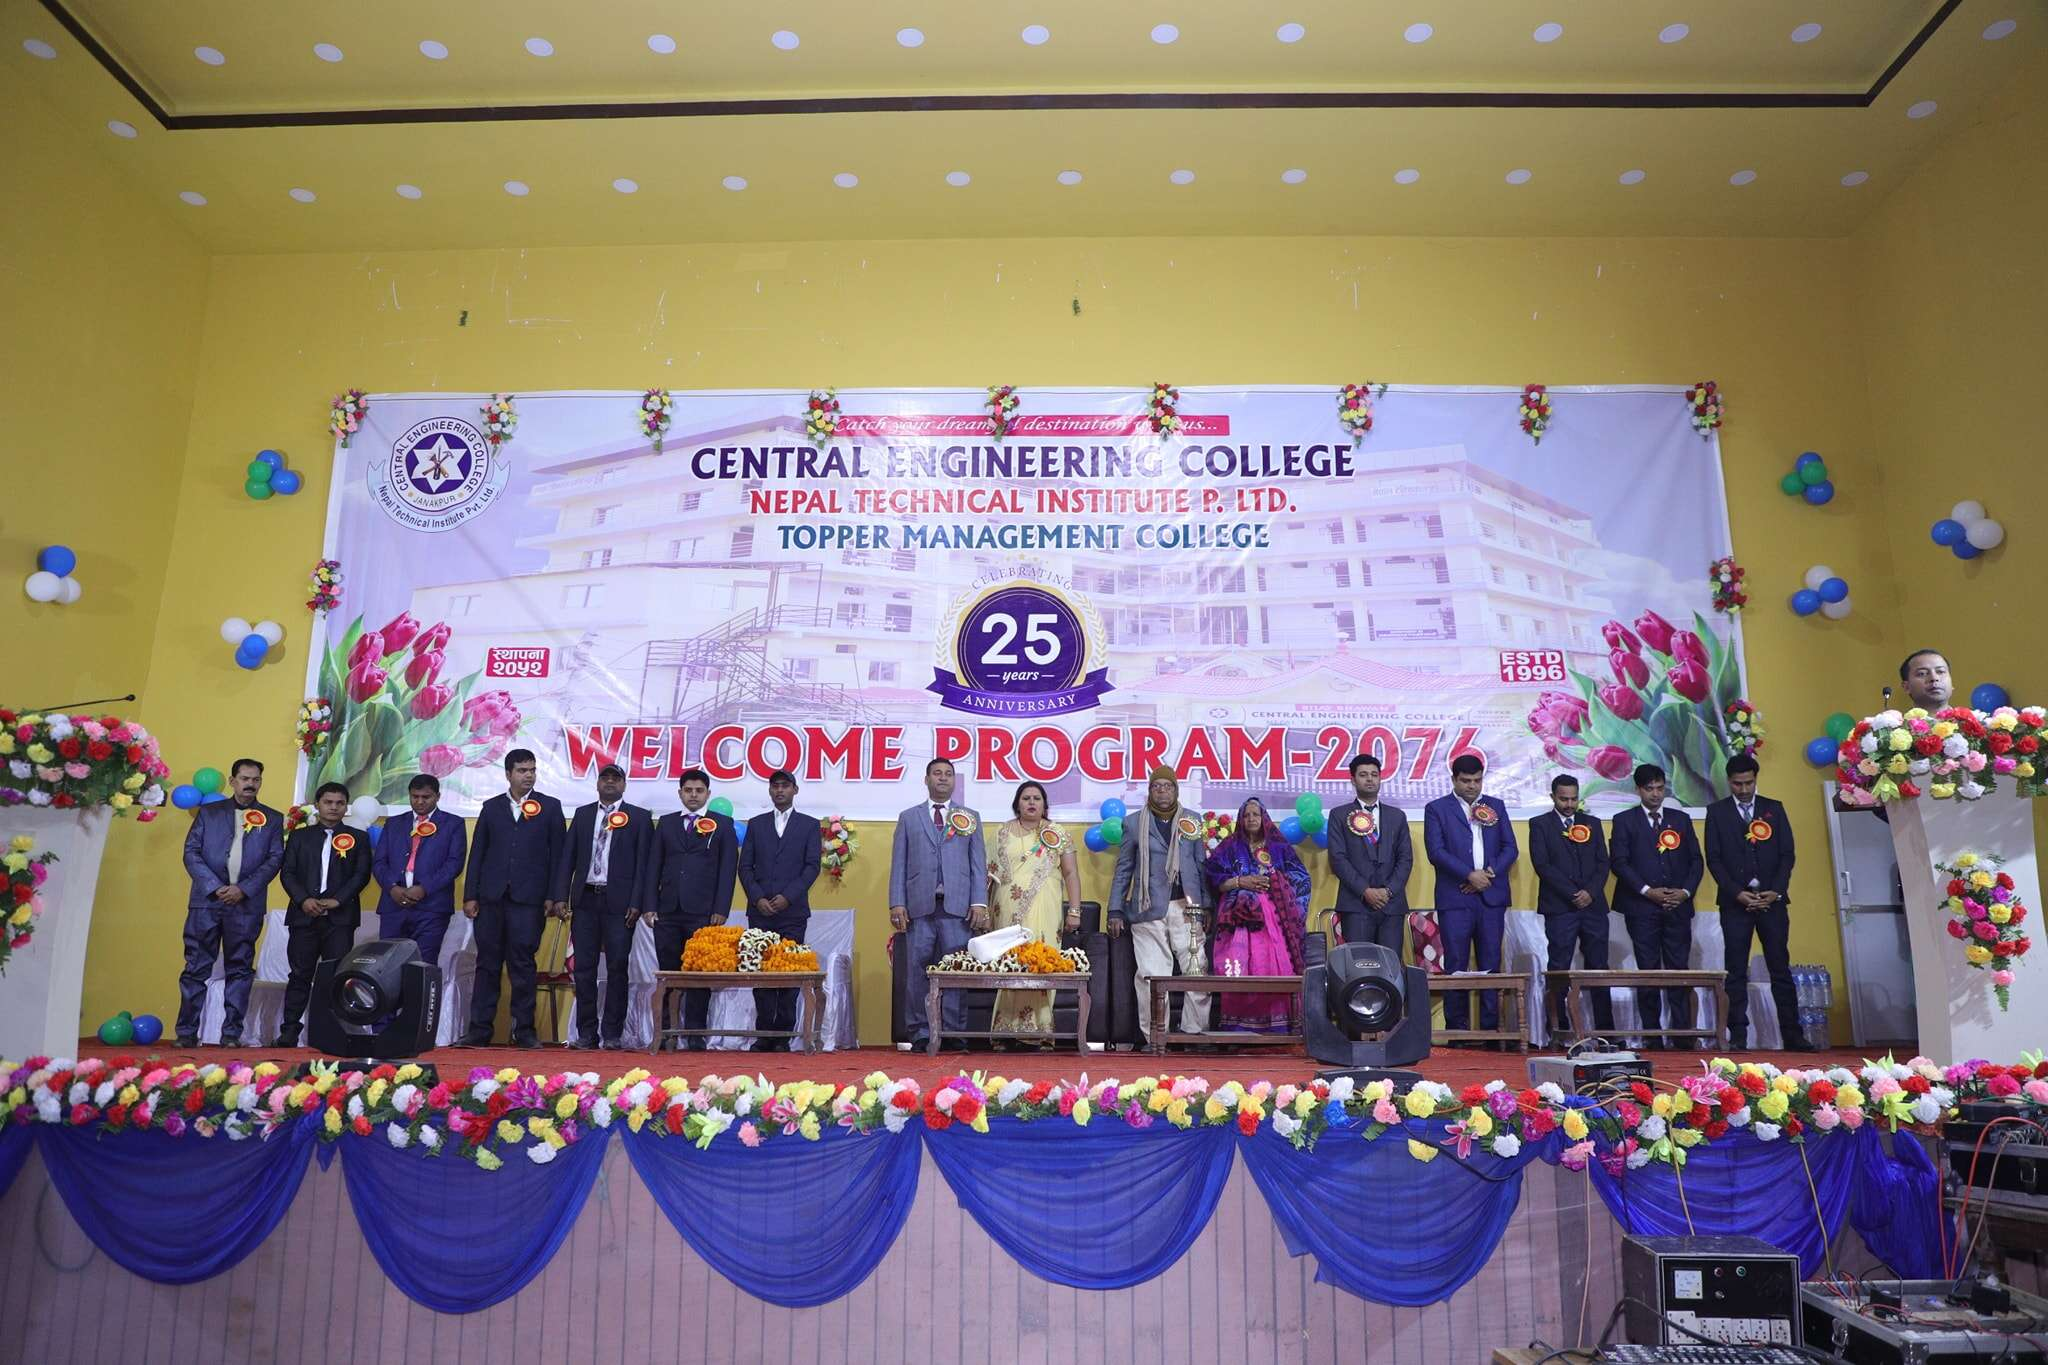 Central Engineering College